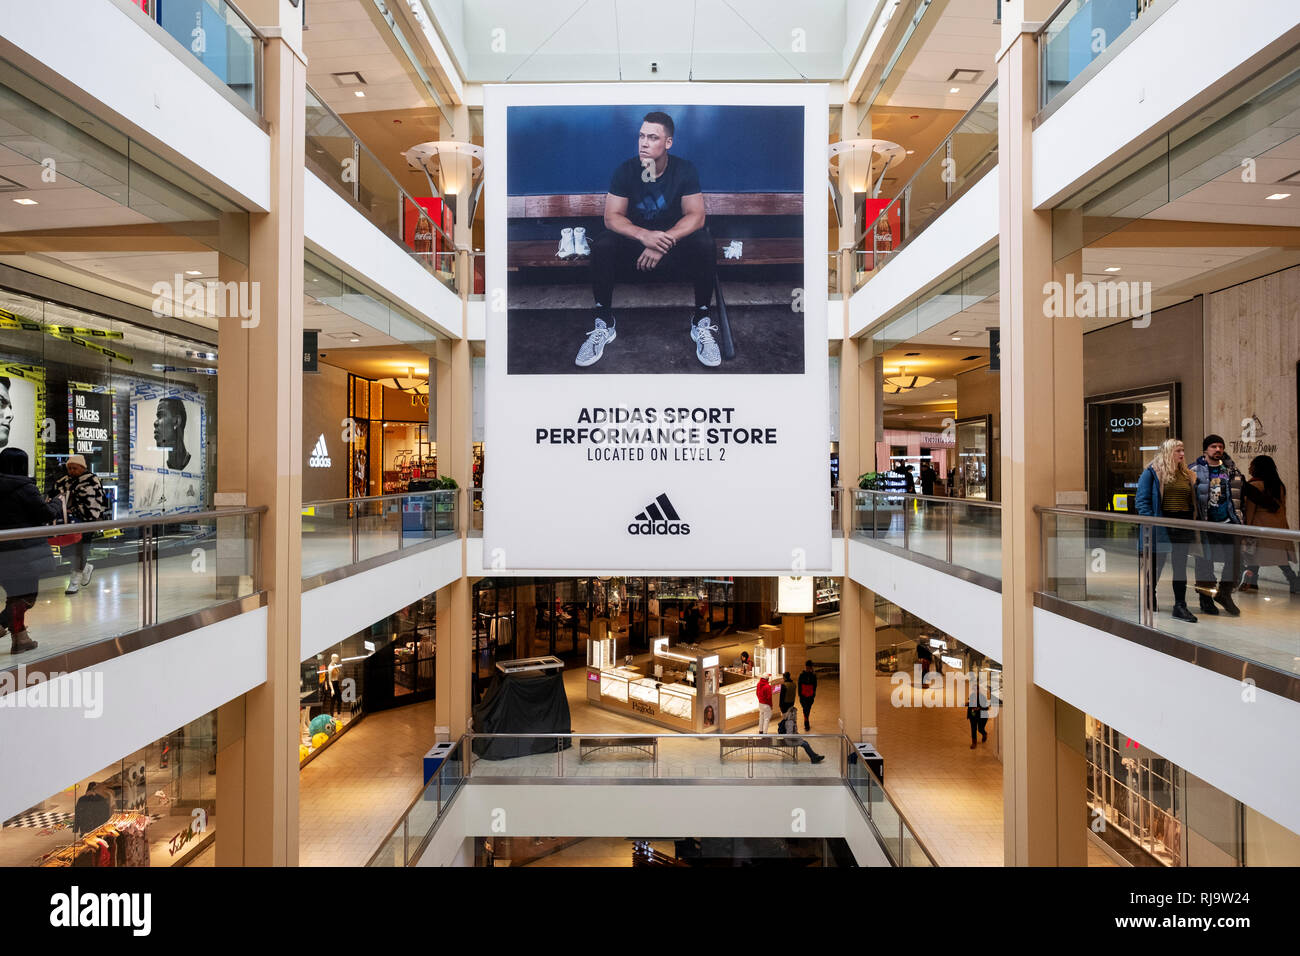 Large sized Aaron Judge advertisement for Adidas at the Queens Center Mall in Elmhurst, Queens, New York City - Stock Image